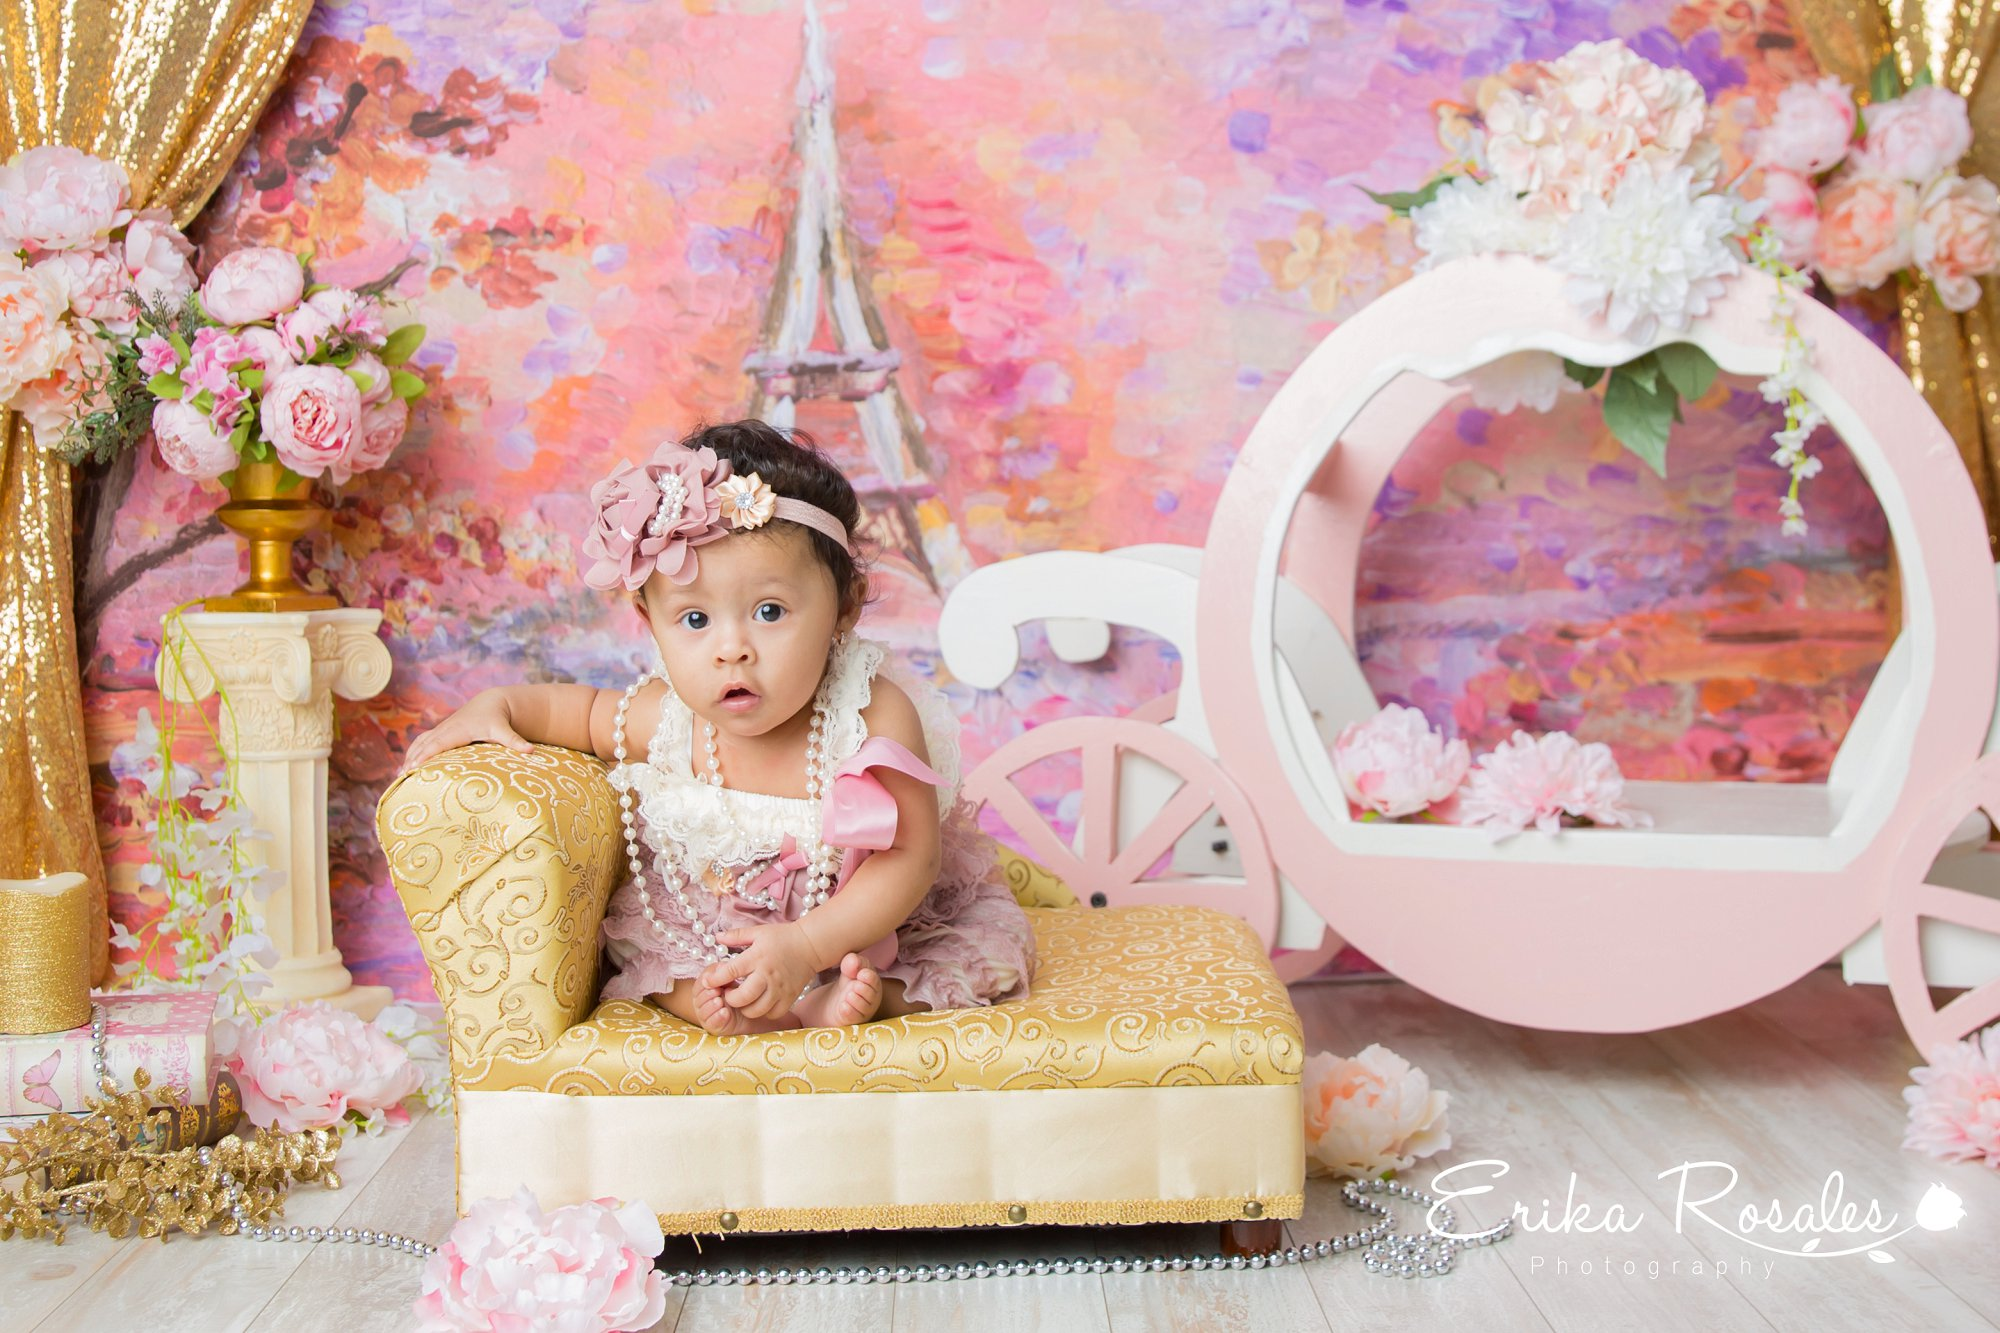 This entry was posted in children photo session and tagged altamaya studio baby girl birthday baby girl photo session baby girl studio photo session